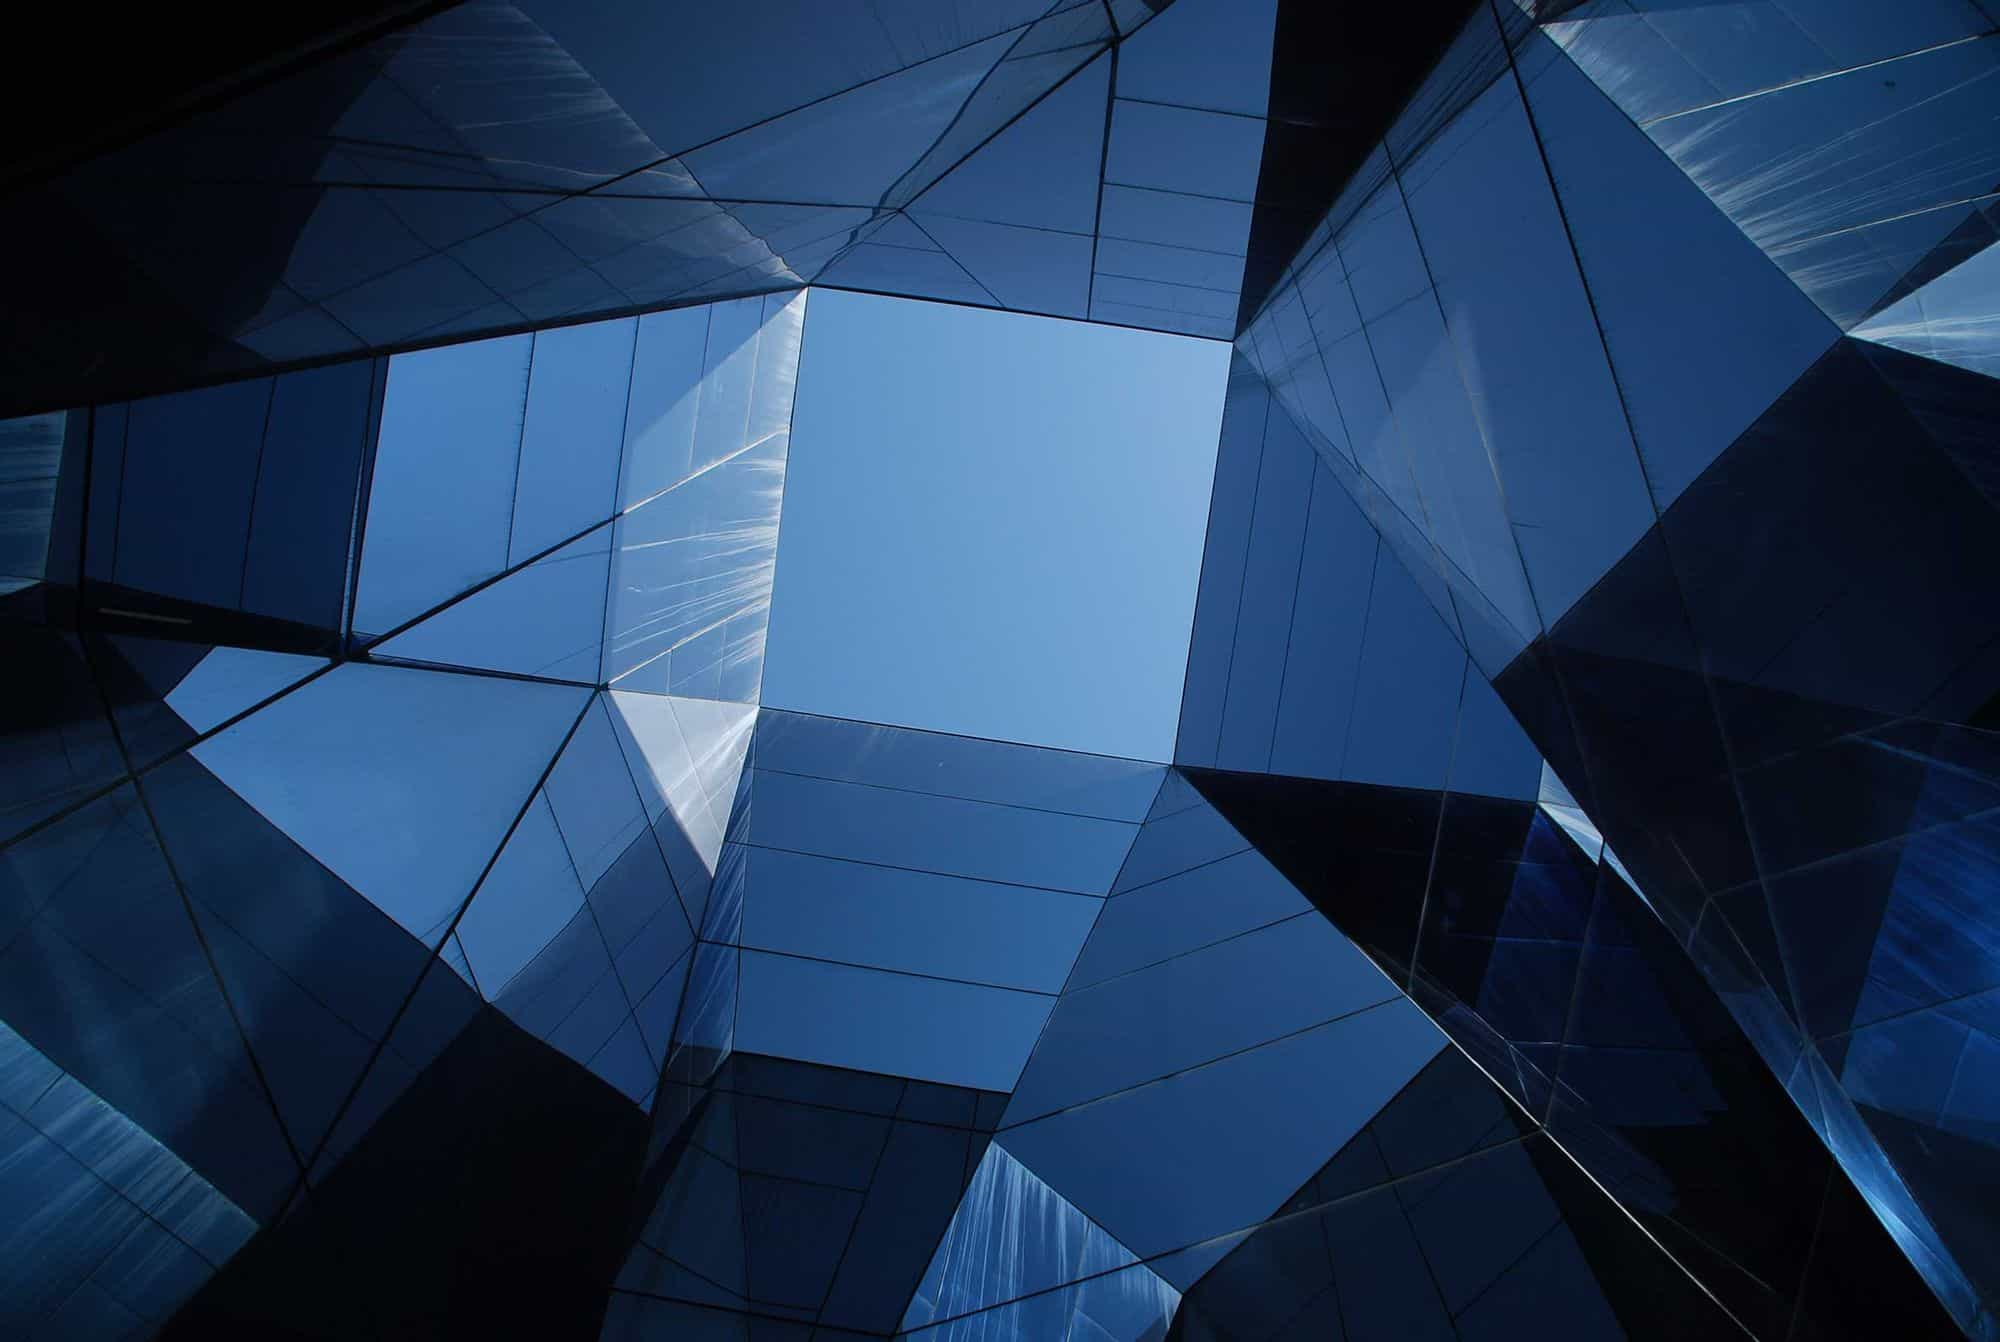 Current state analysis